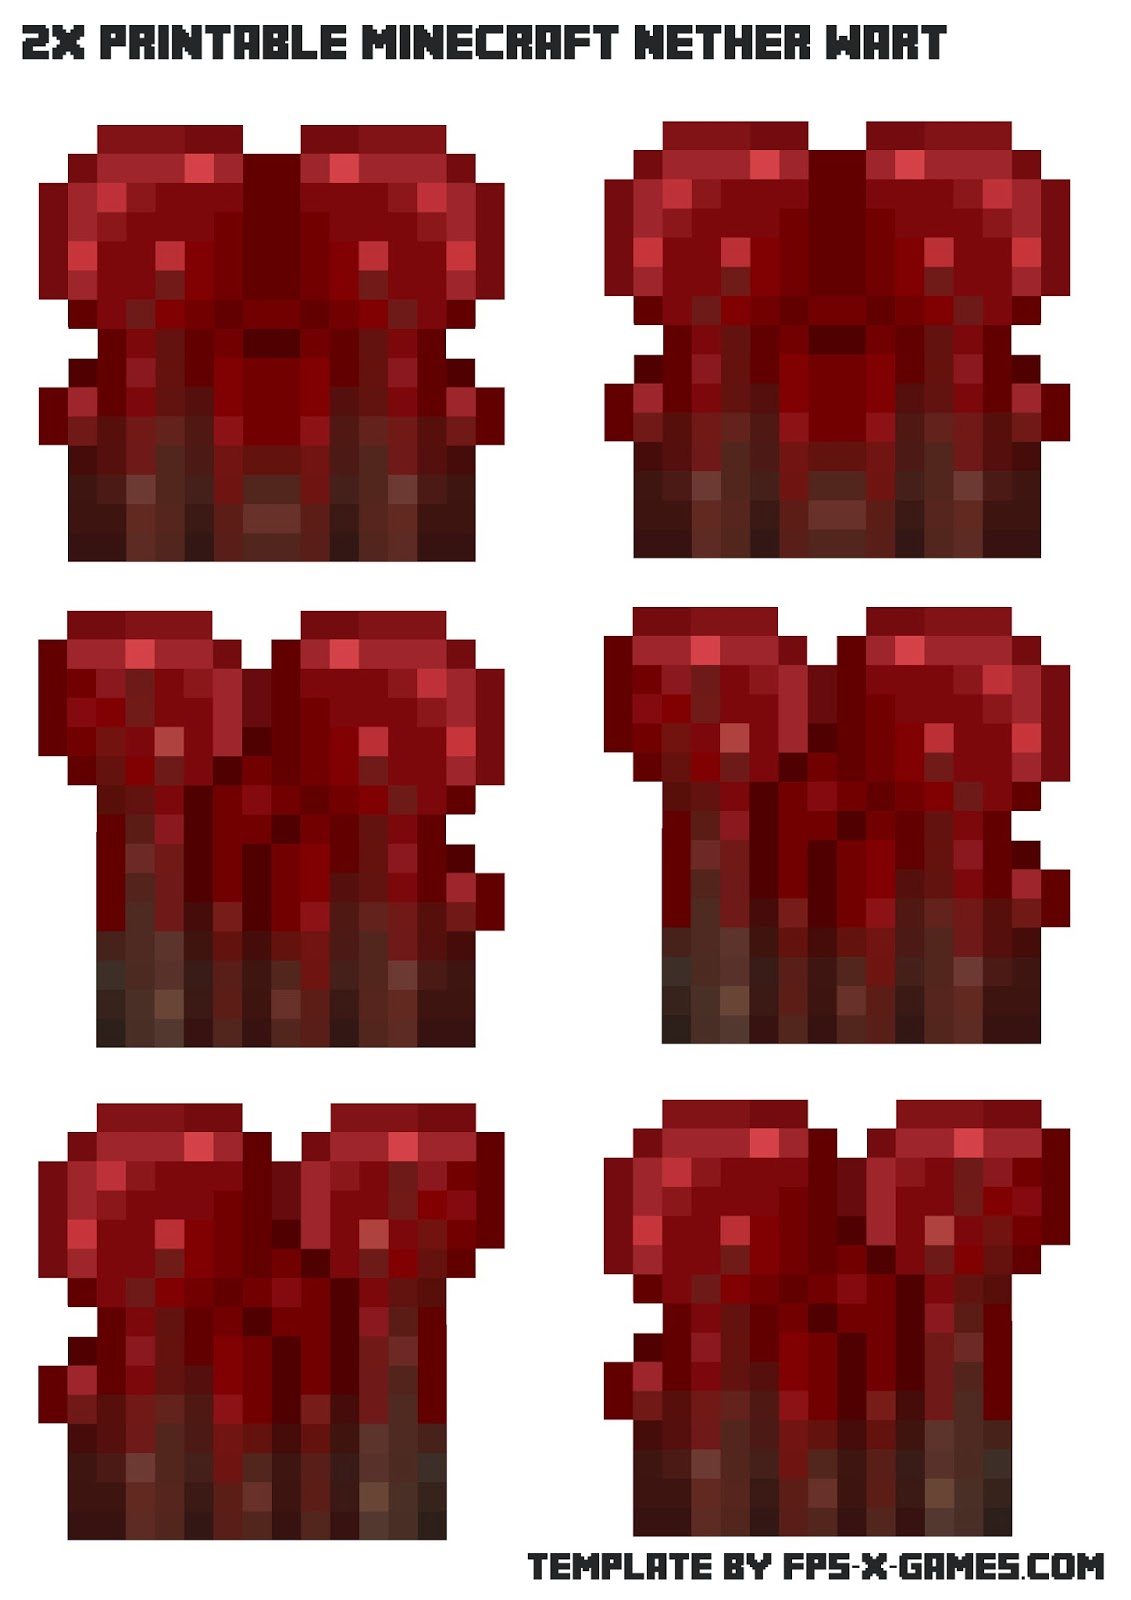 Minecraft Nether Wart - Printable Papercraft